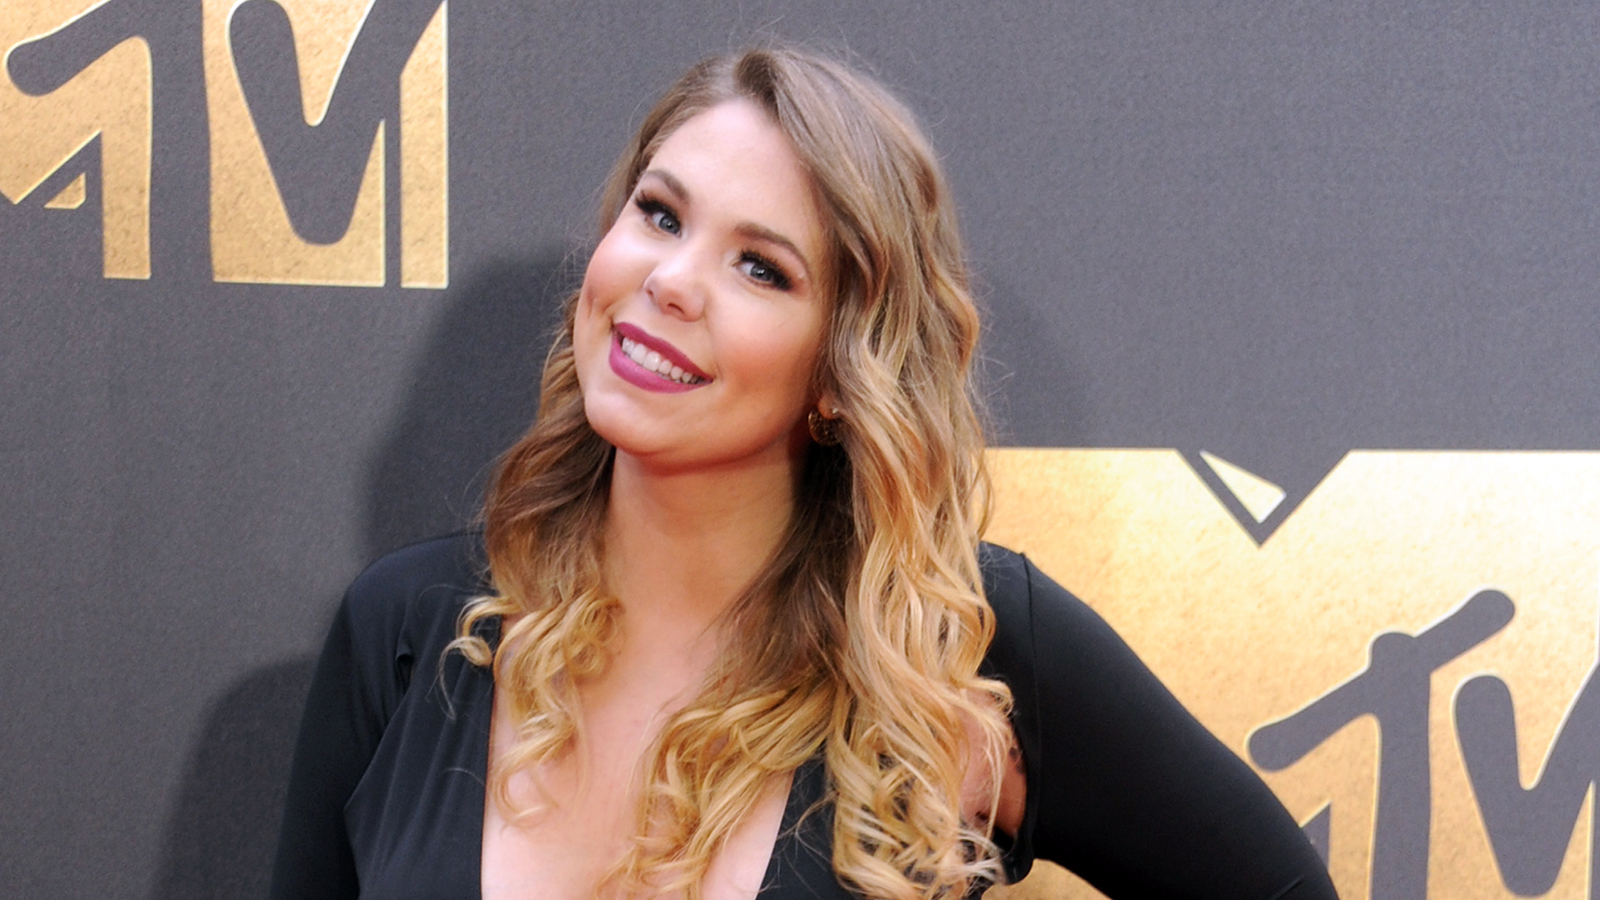 Https Www Intouchweekly Com Posts How Did Chanel West Coast